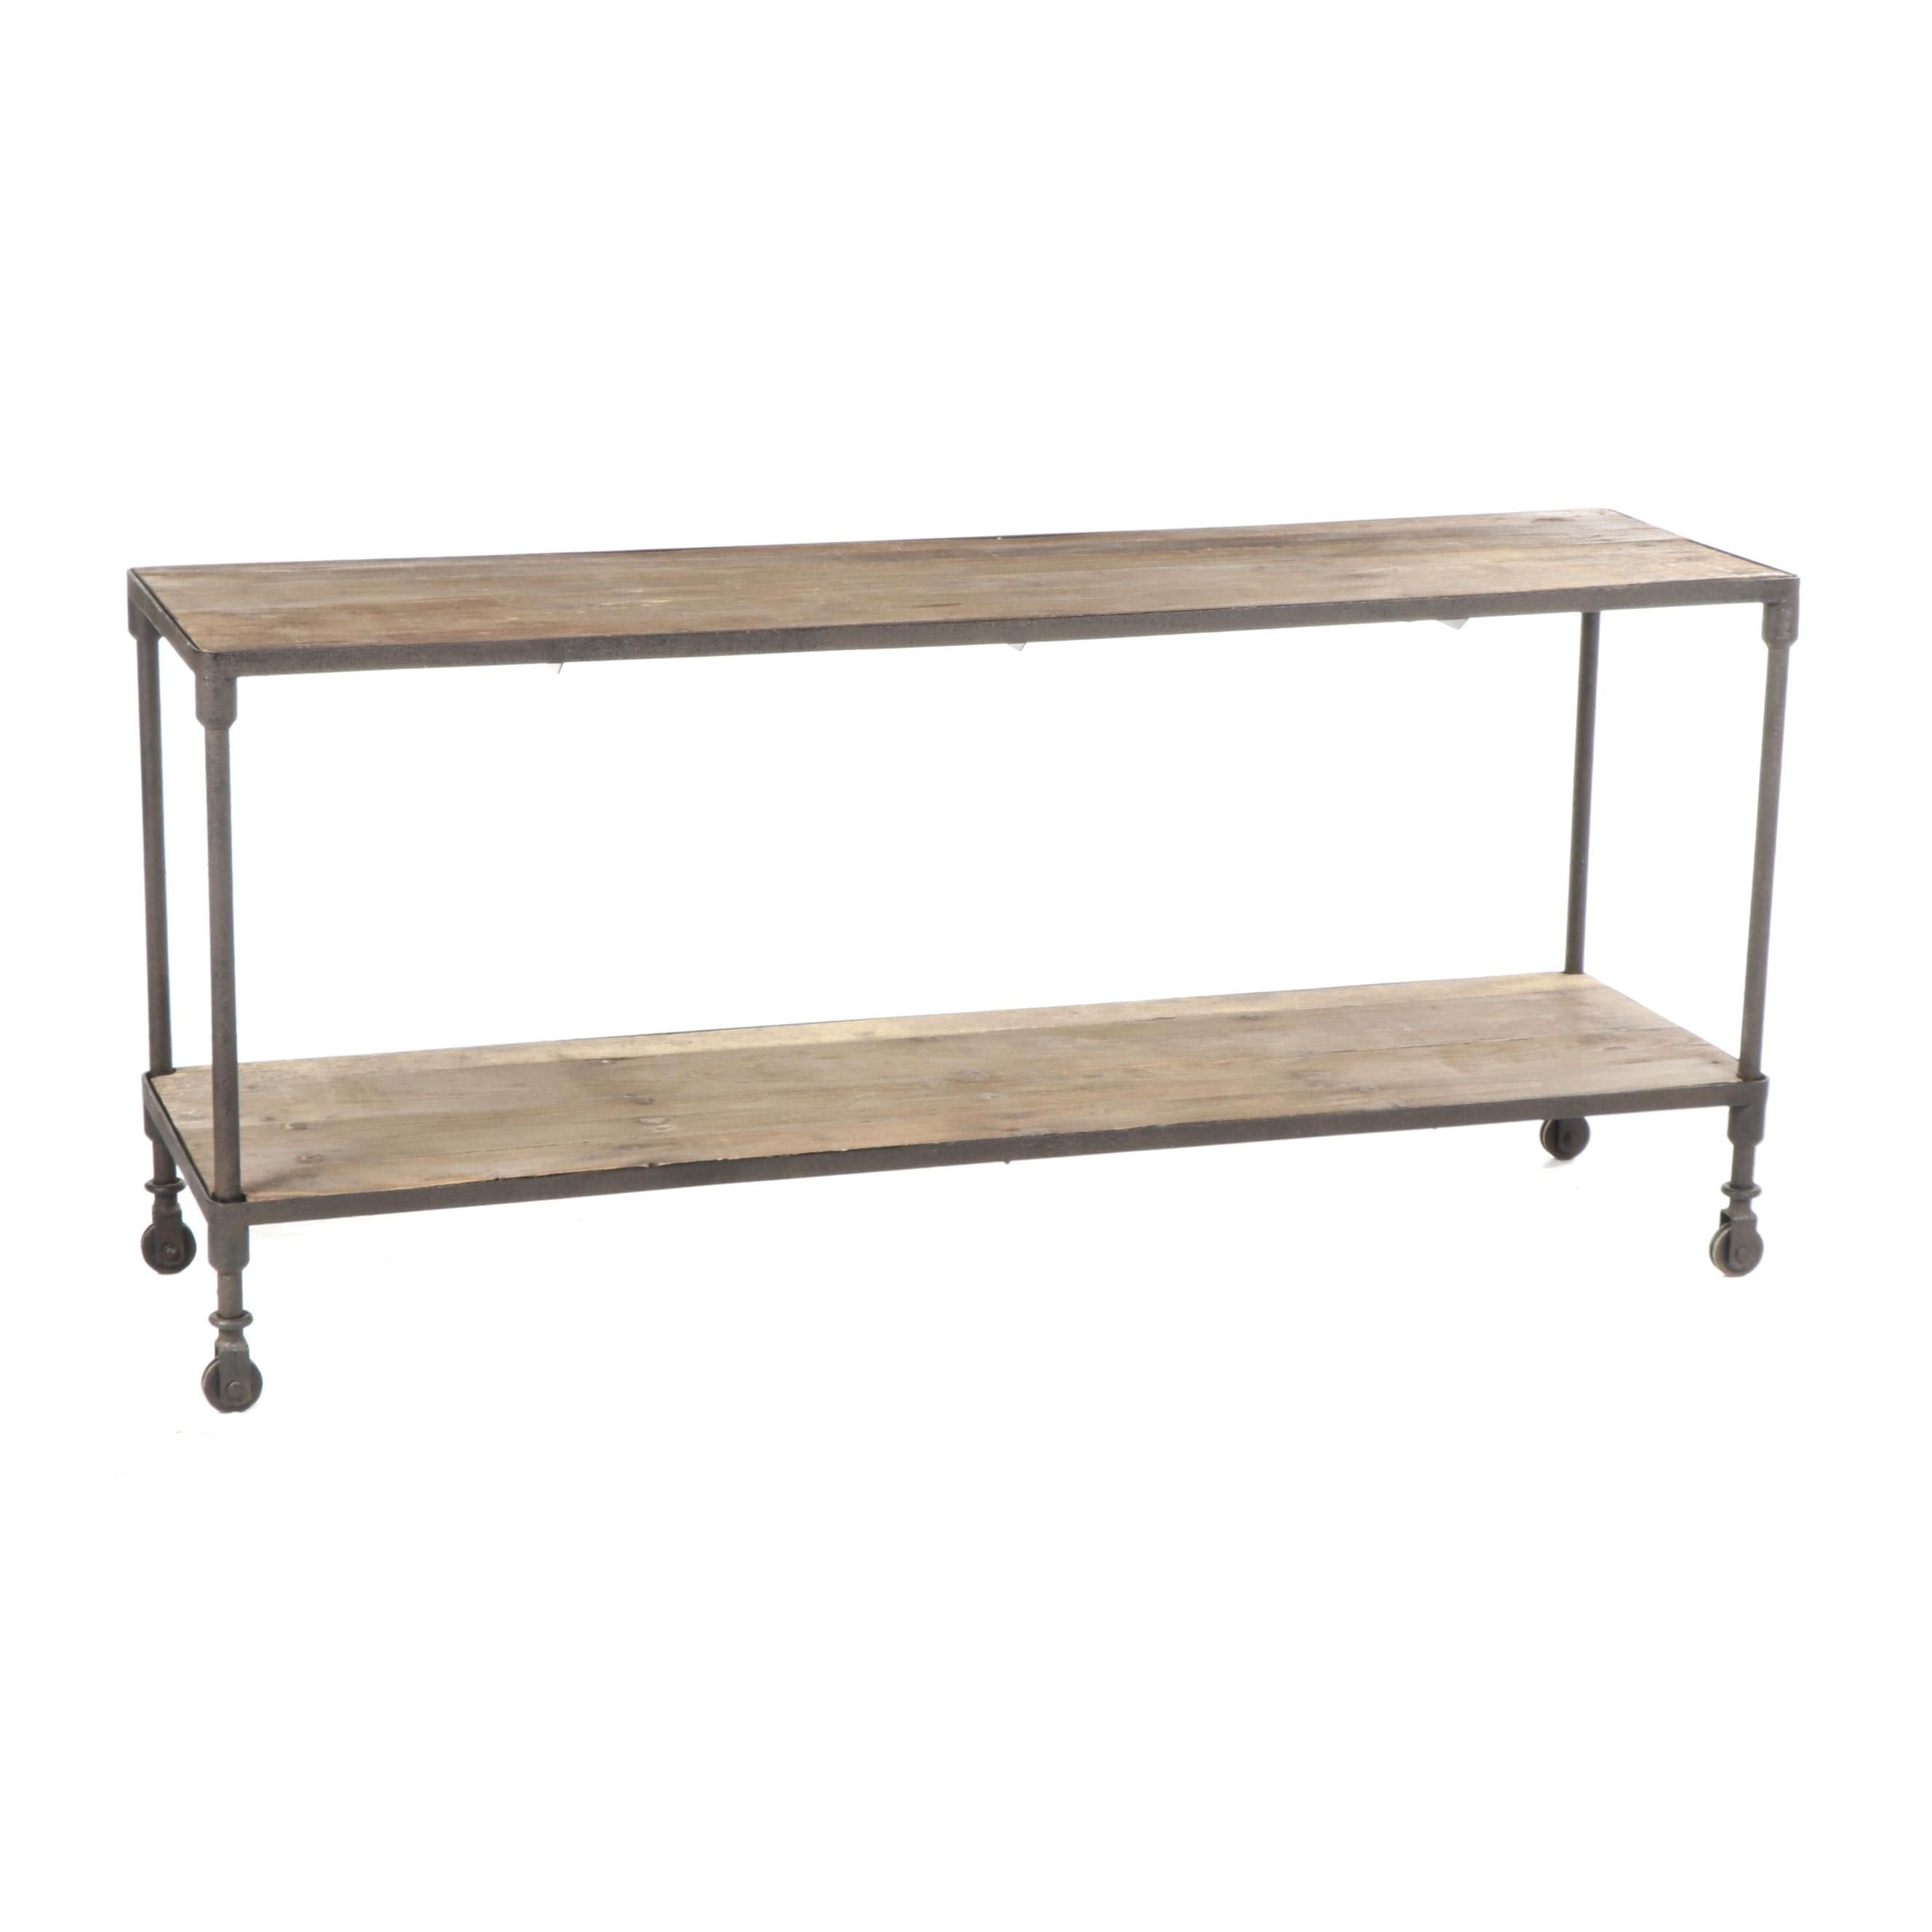 Industrial Style Pine and Metal Console Table on Casters, 20th Century